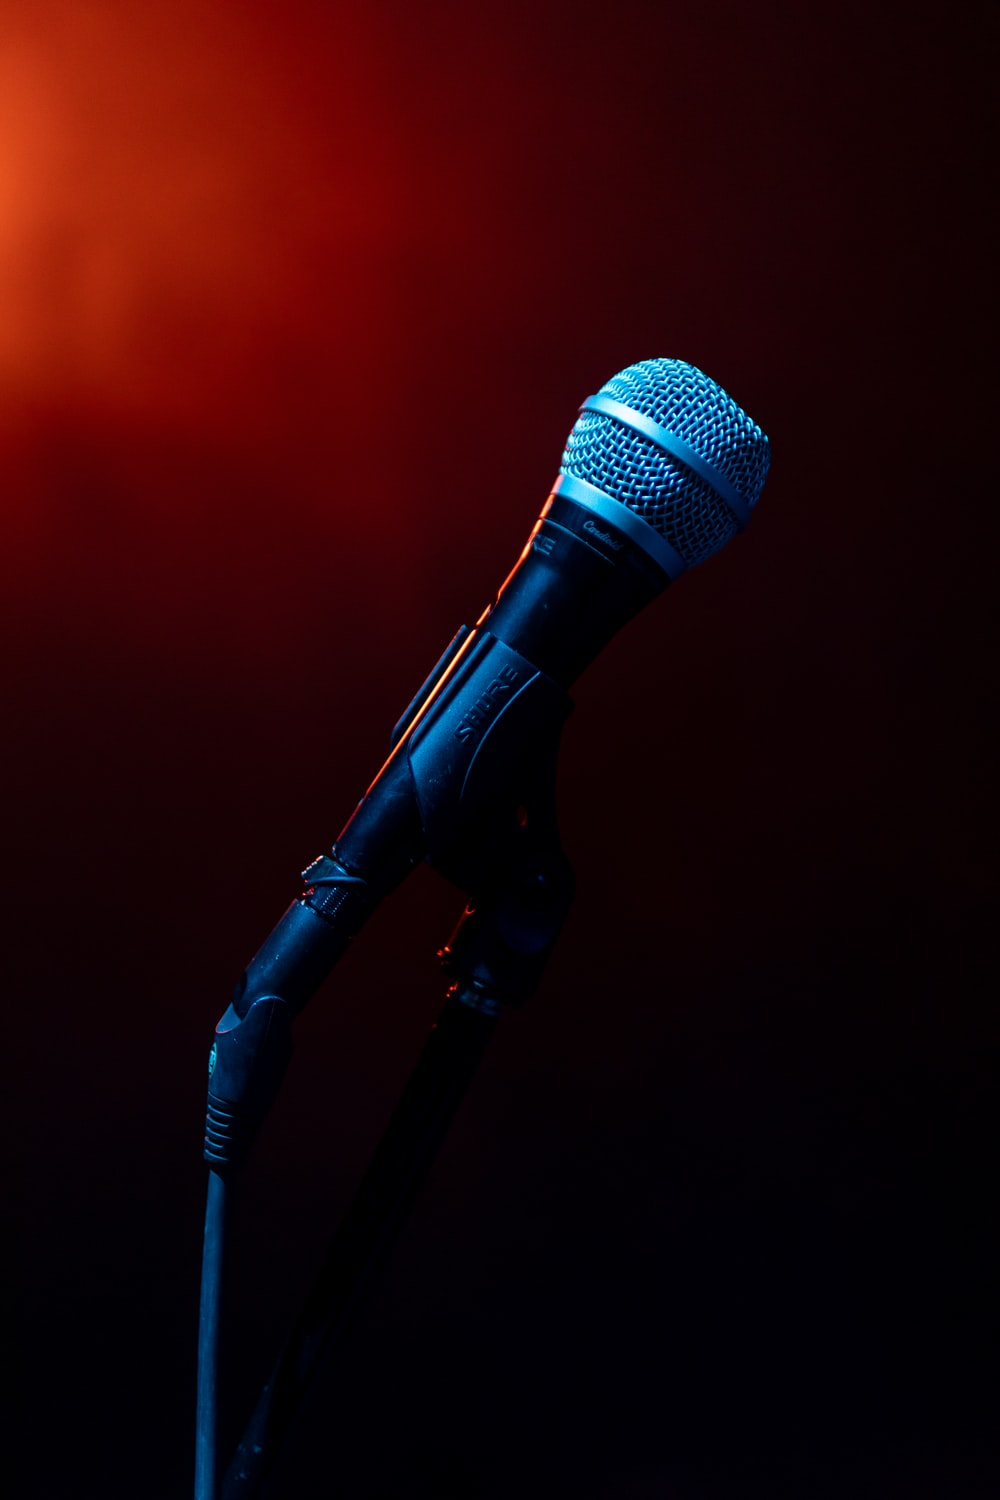 black microphone on black microphone stand